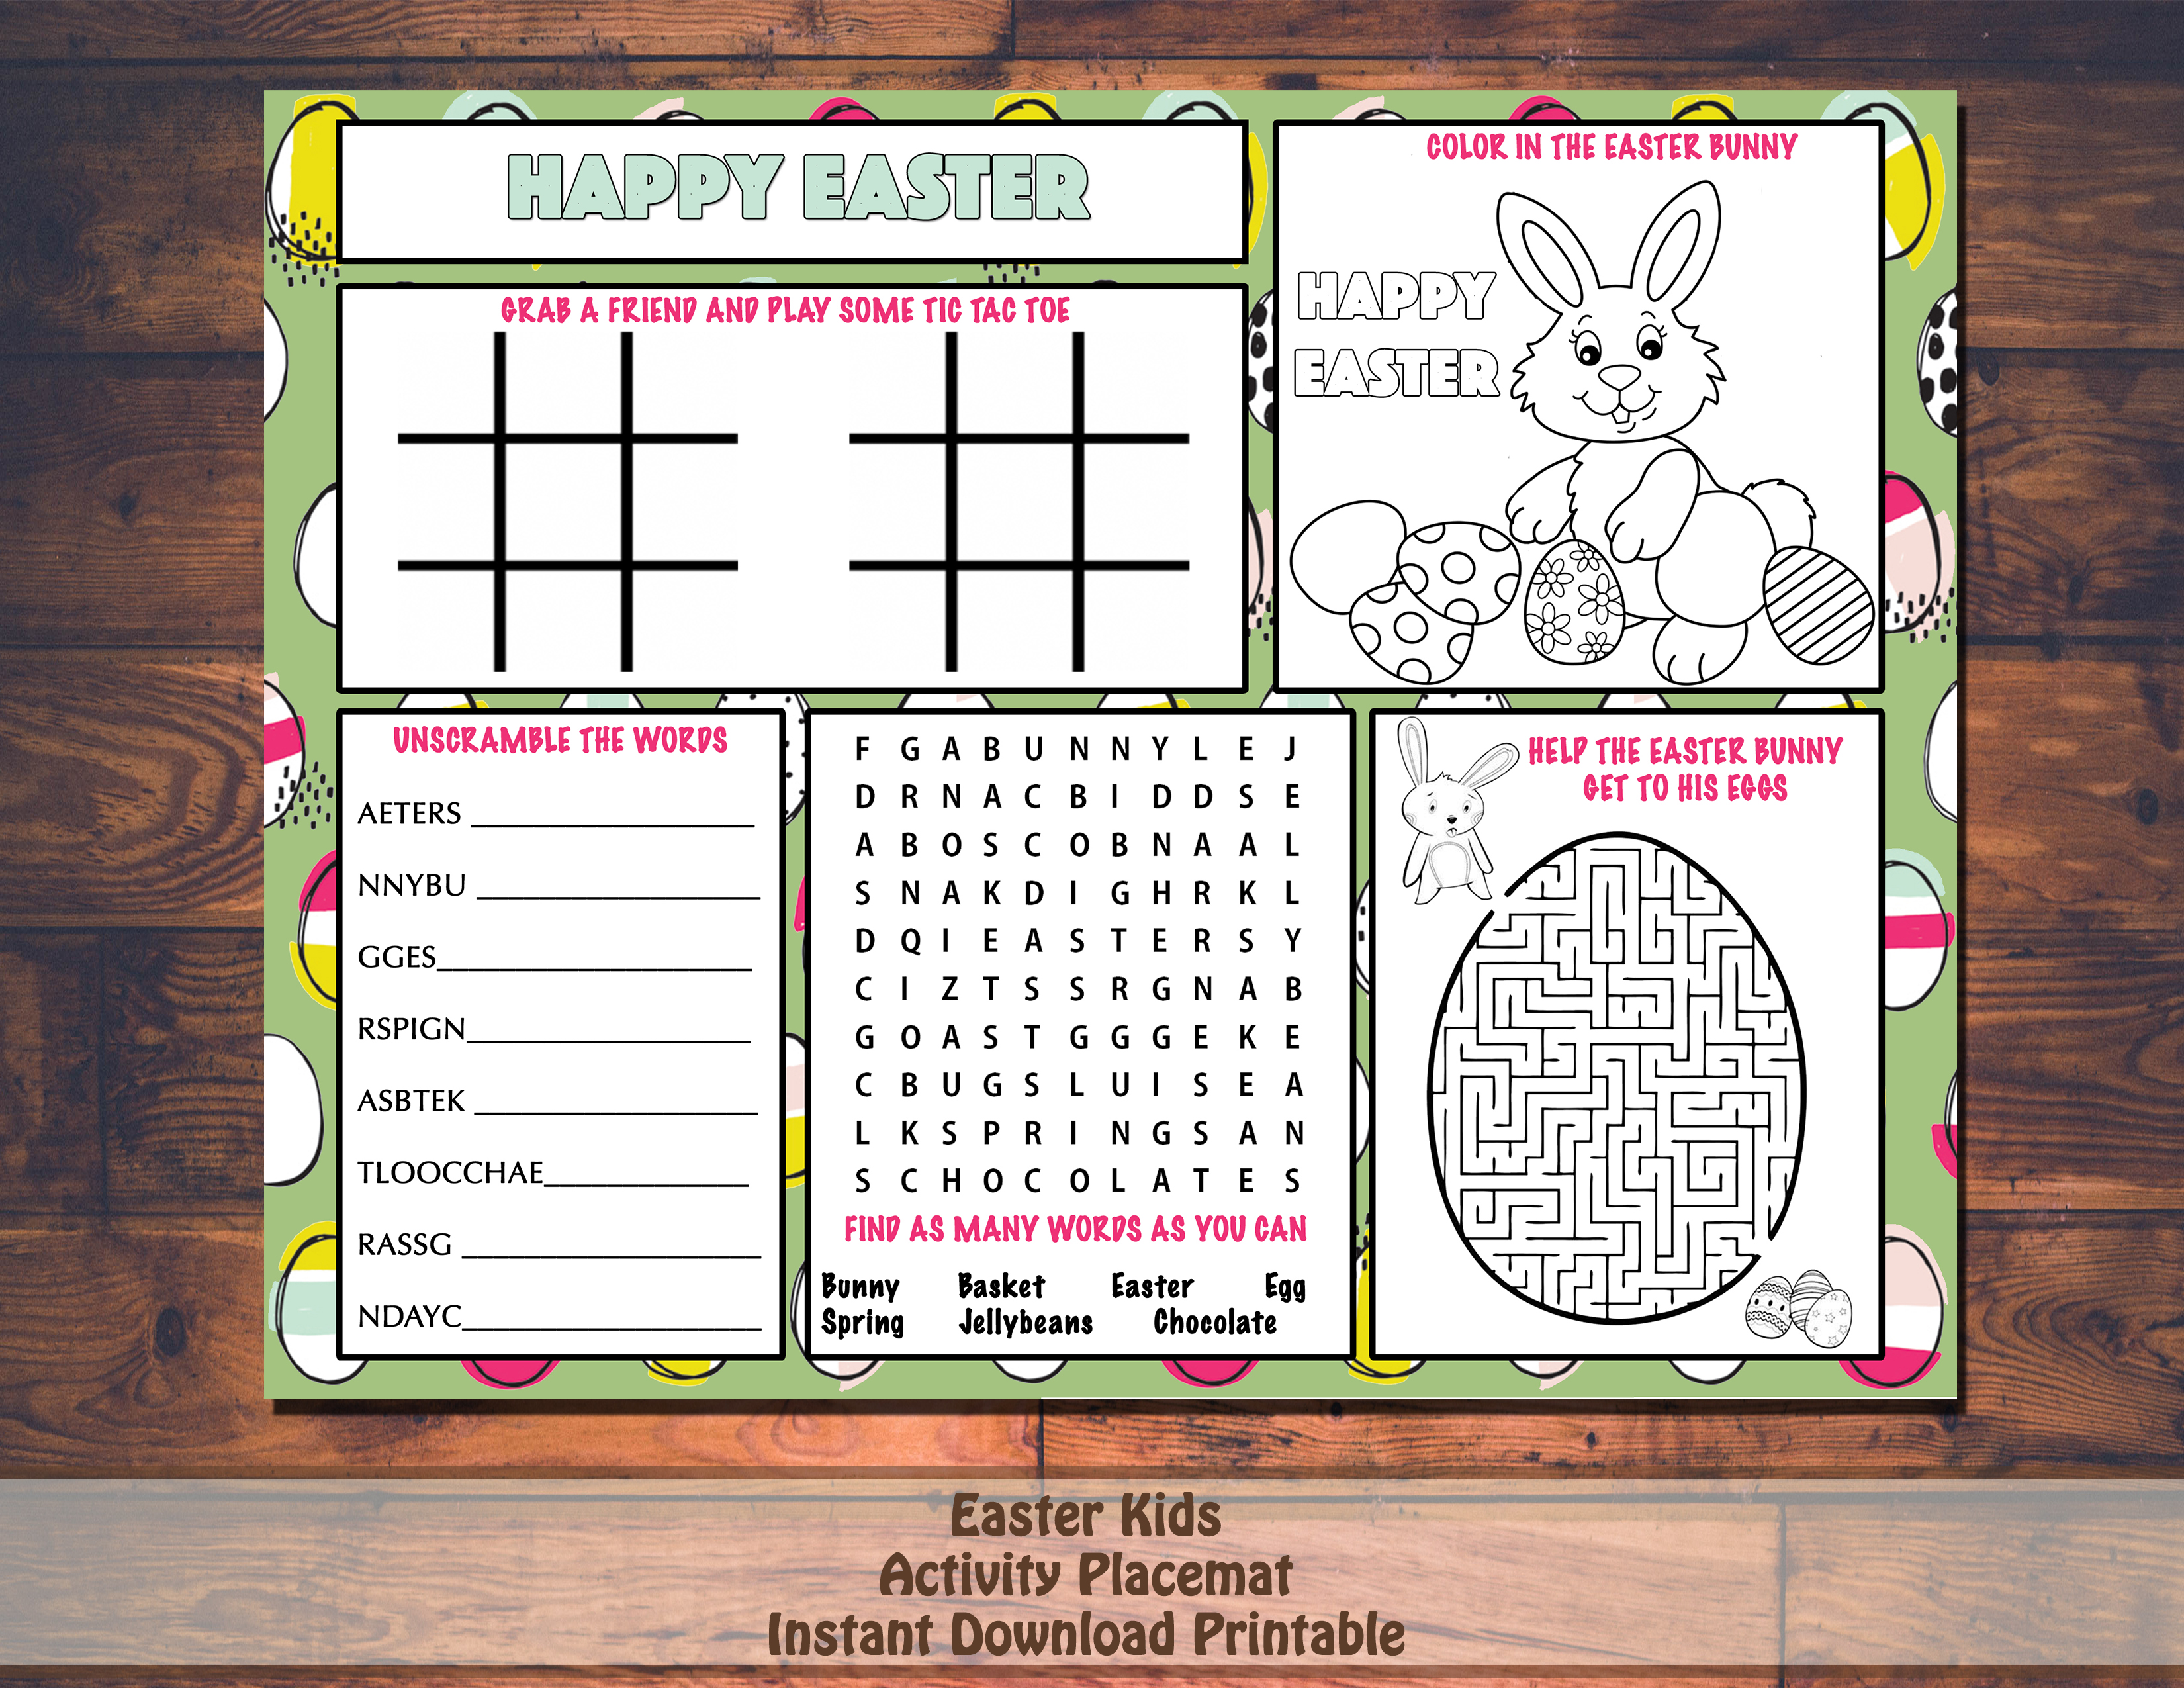 photo regarding Printable Placemats named Pover and Easter Printable Placemats Uncomplicated Function Options